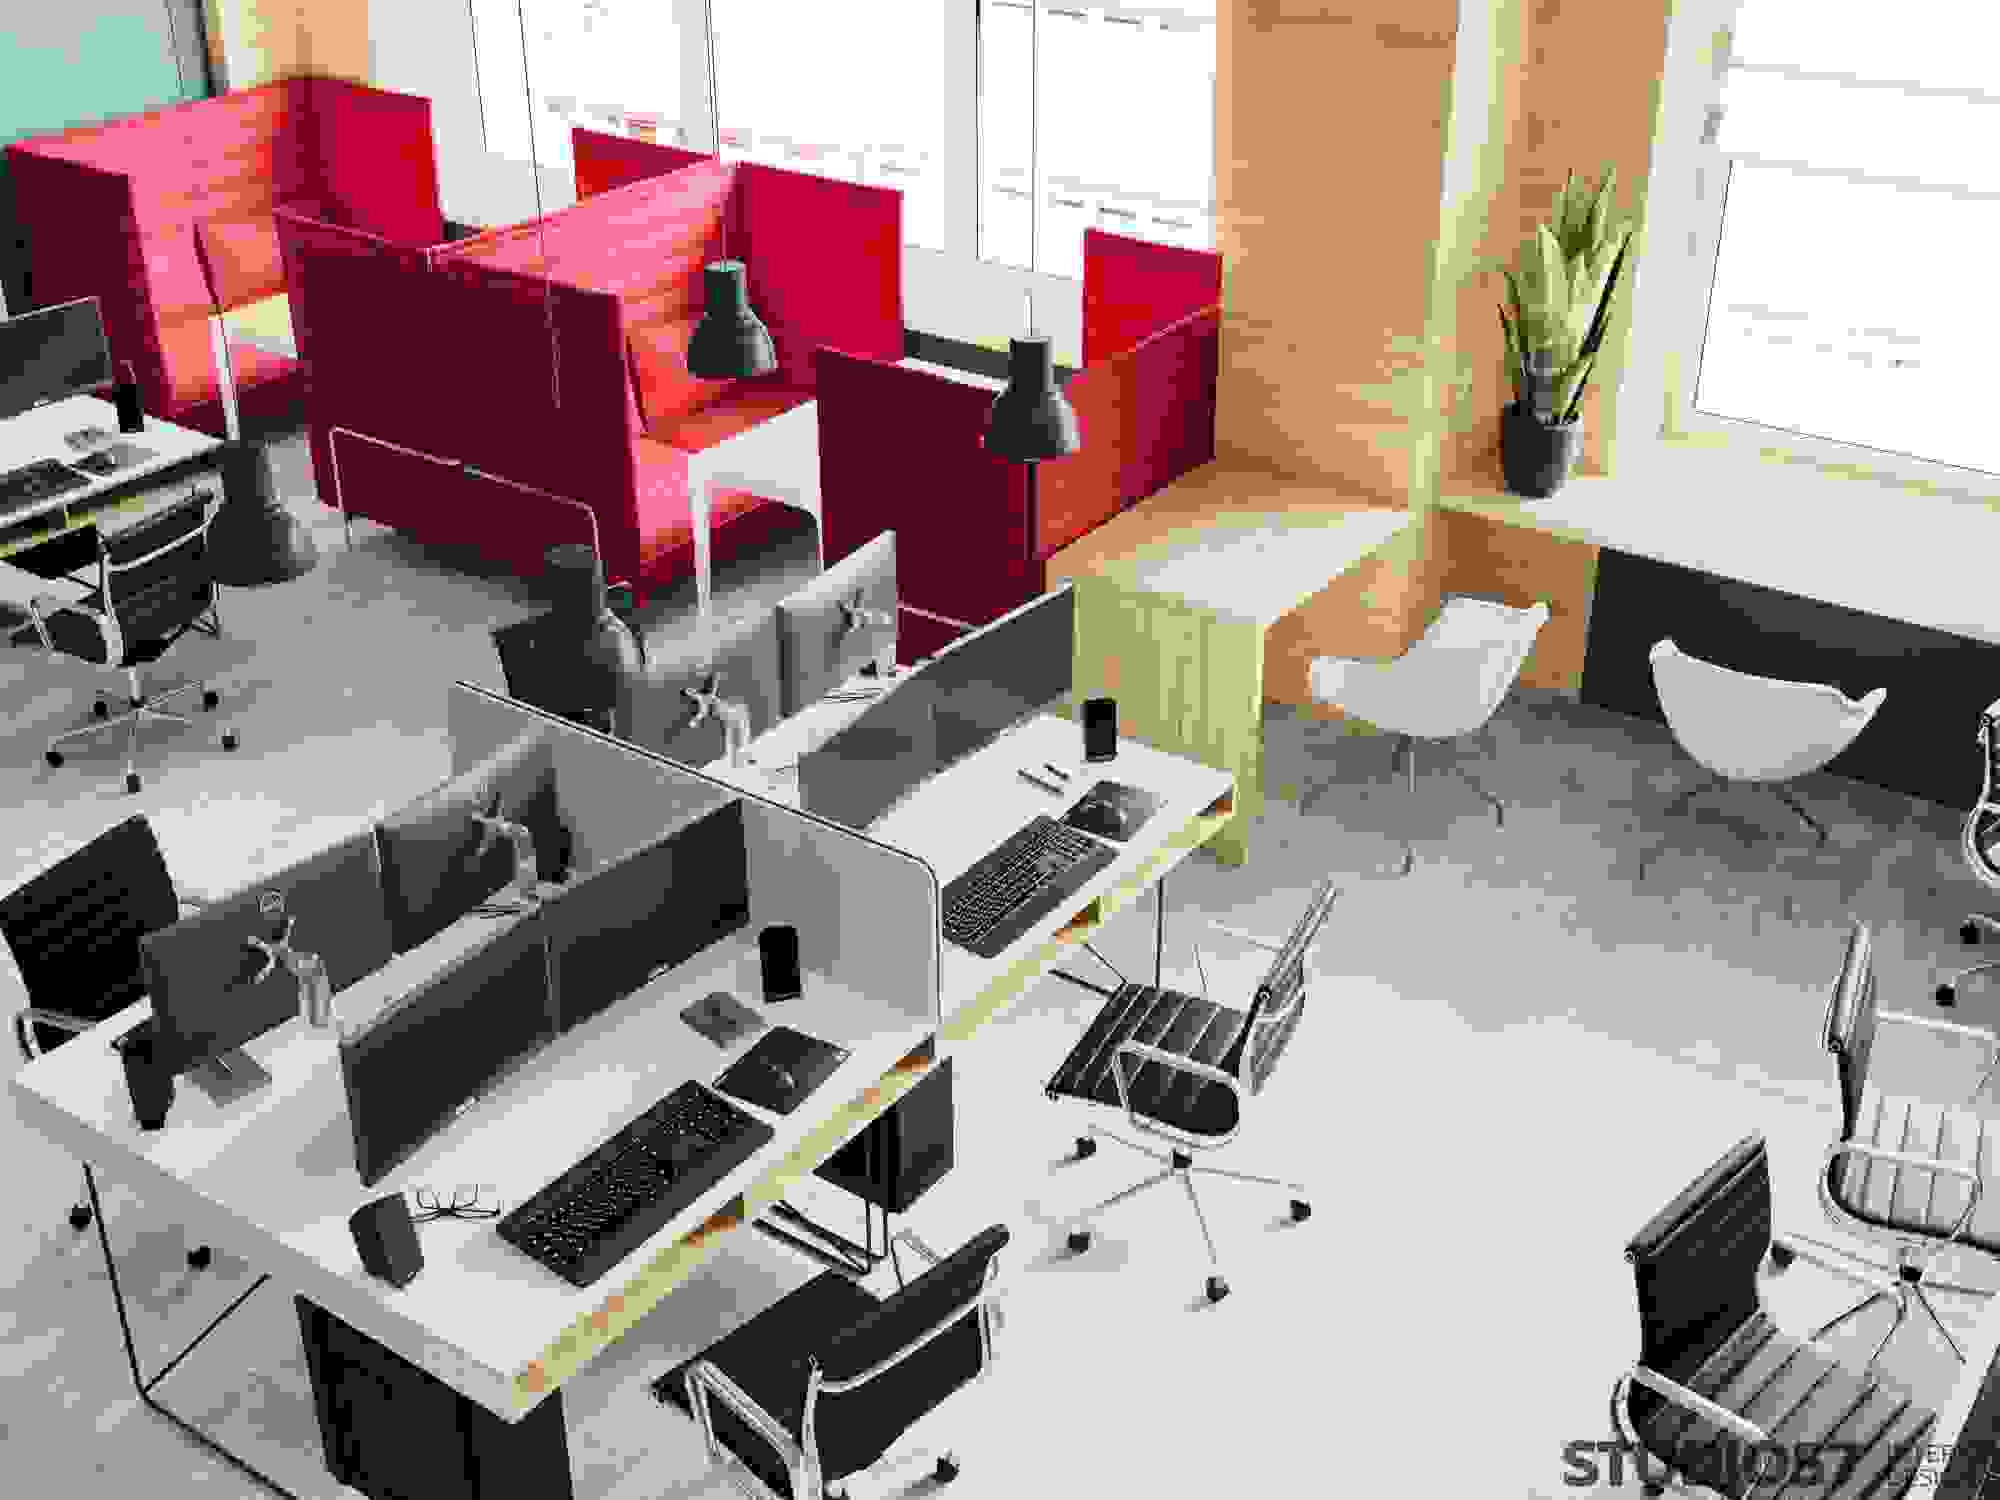 Design of workplaces in the office